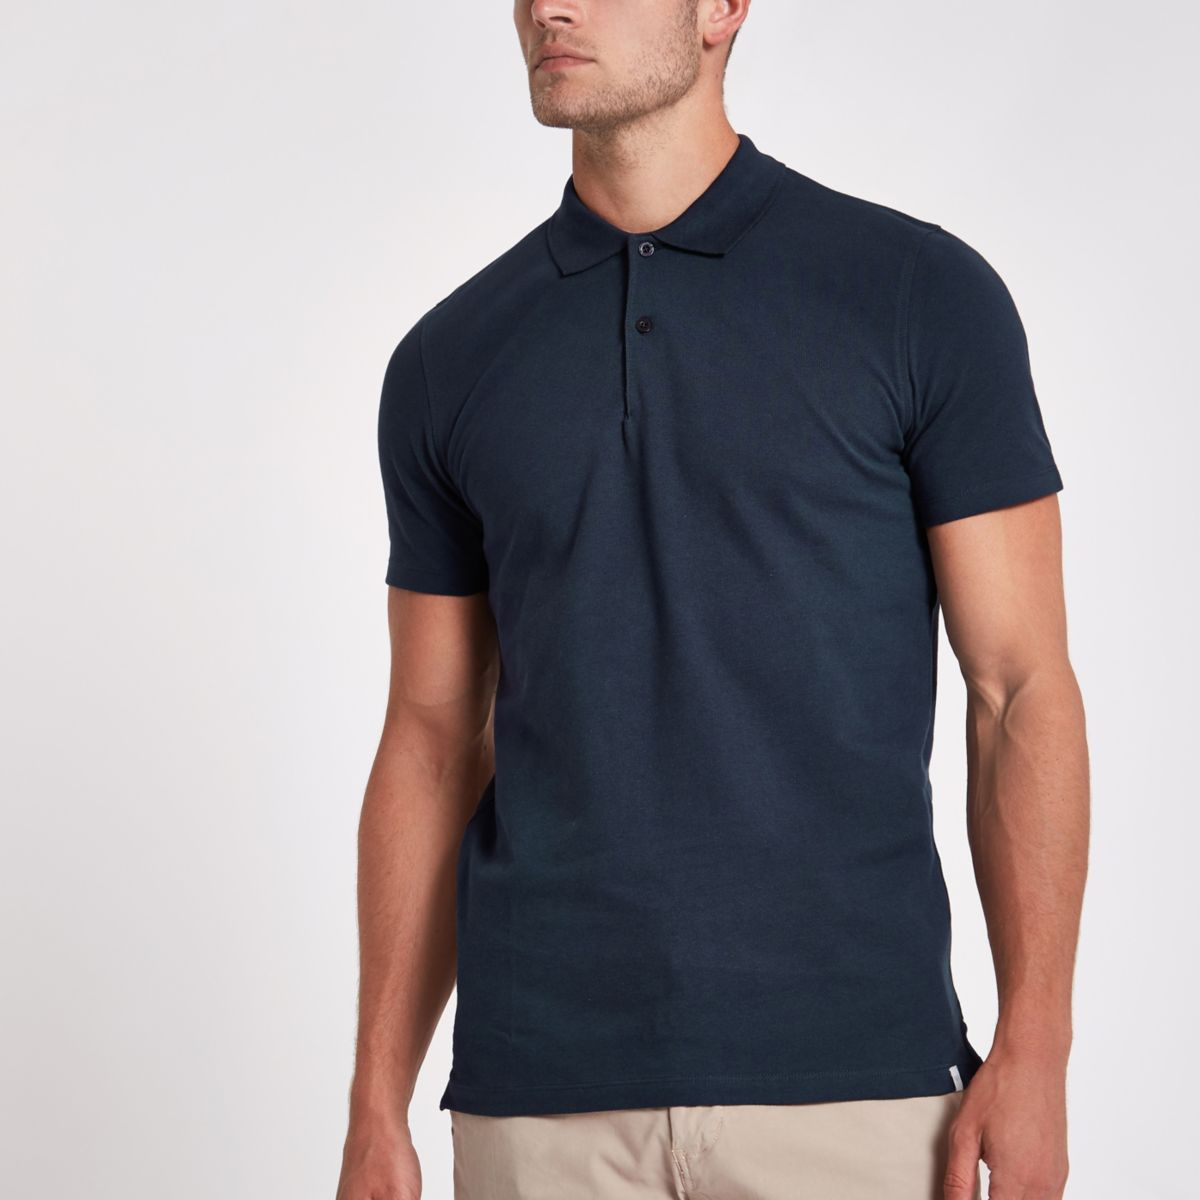 Minimum navy polo shirt